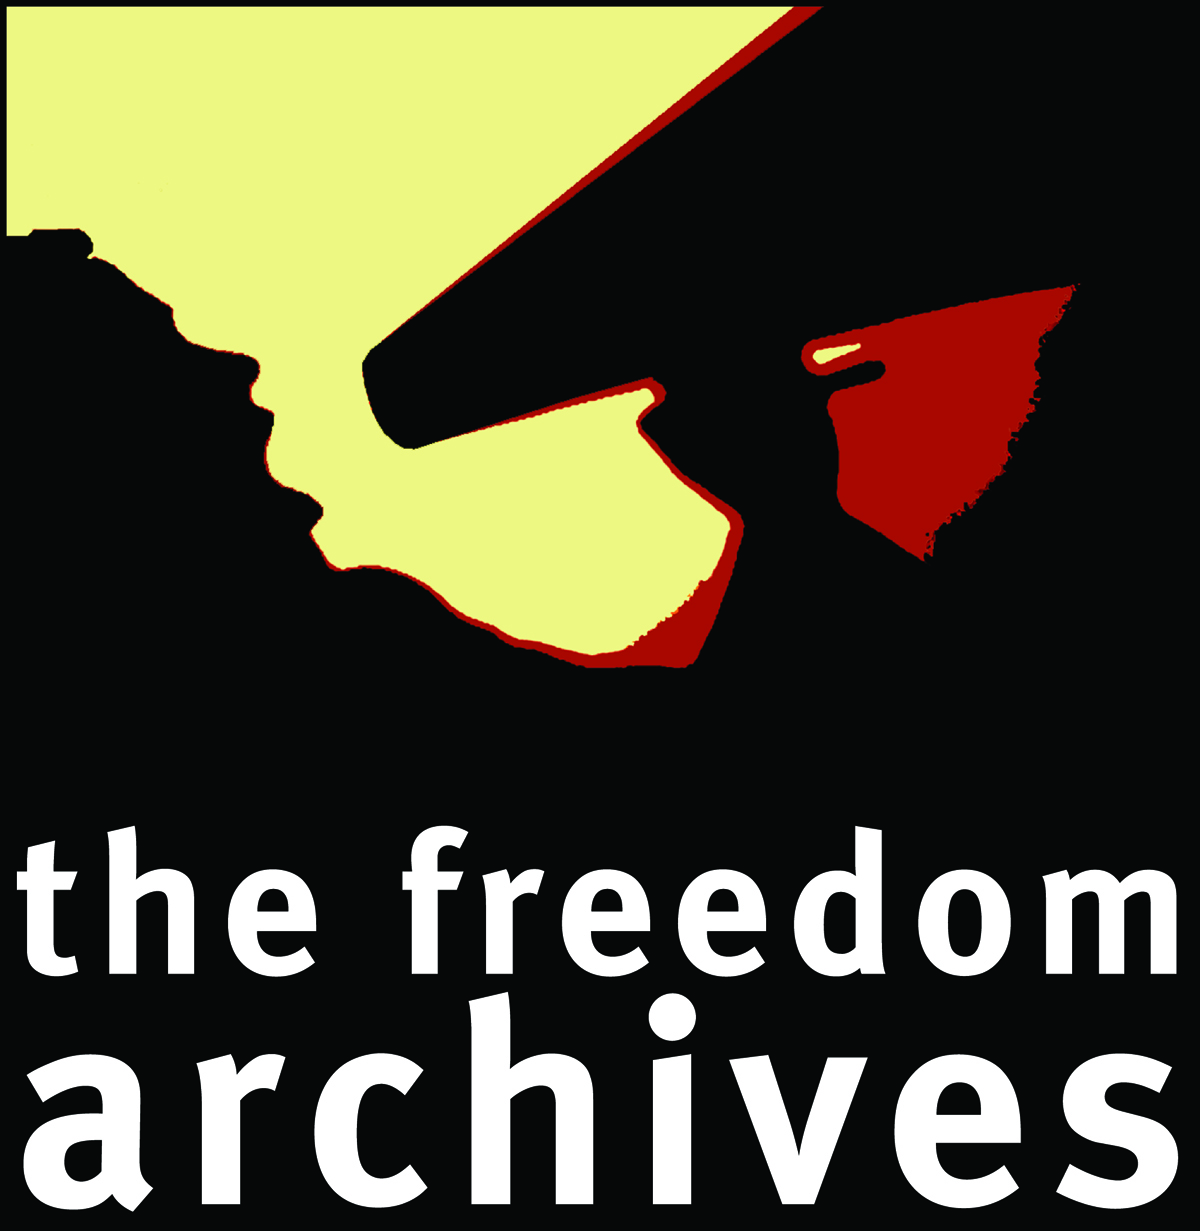 Freedom_Archives_logo.jpg